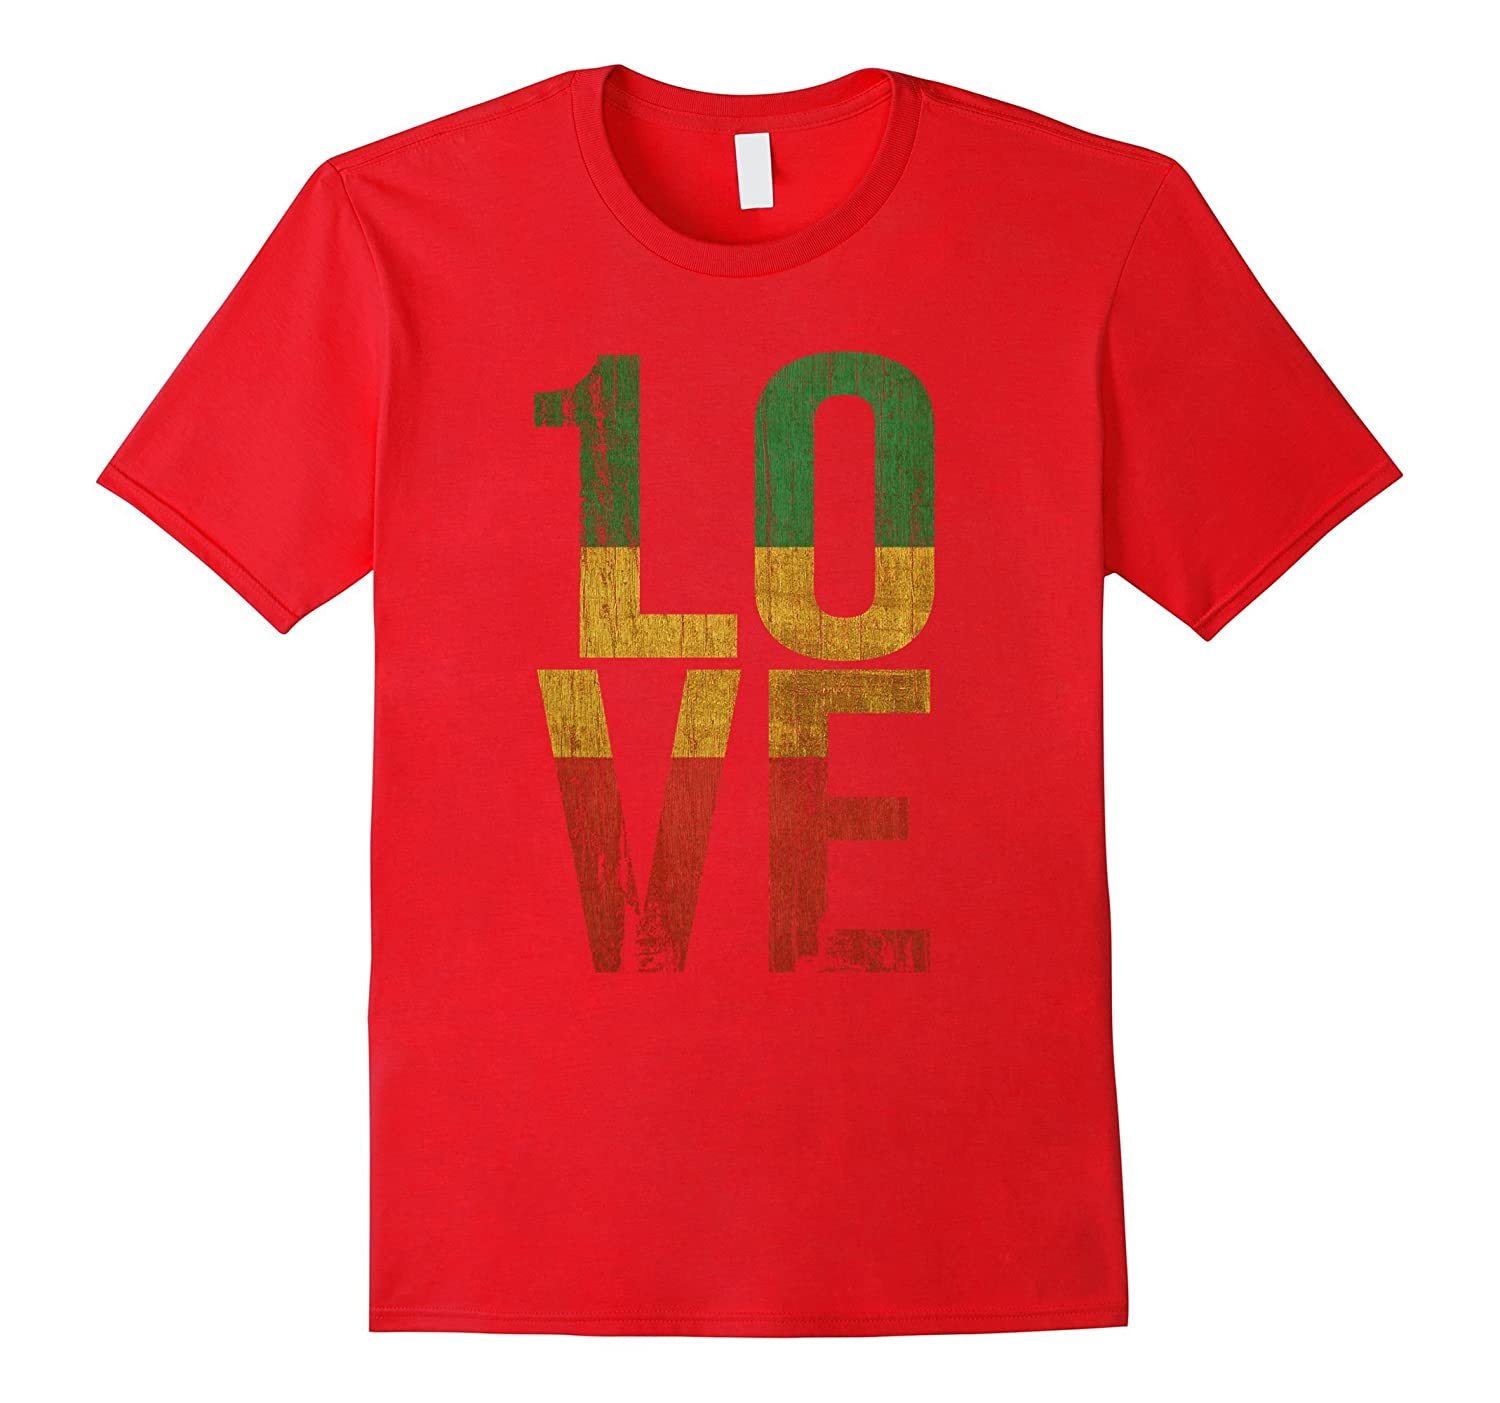 1 Love T Shirt For Reggae Music Fans-ah my shirt one gift